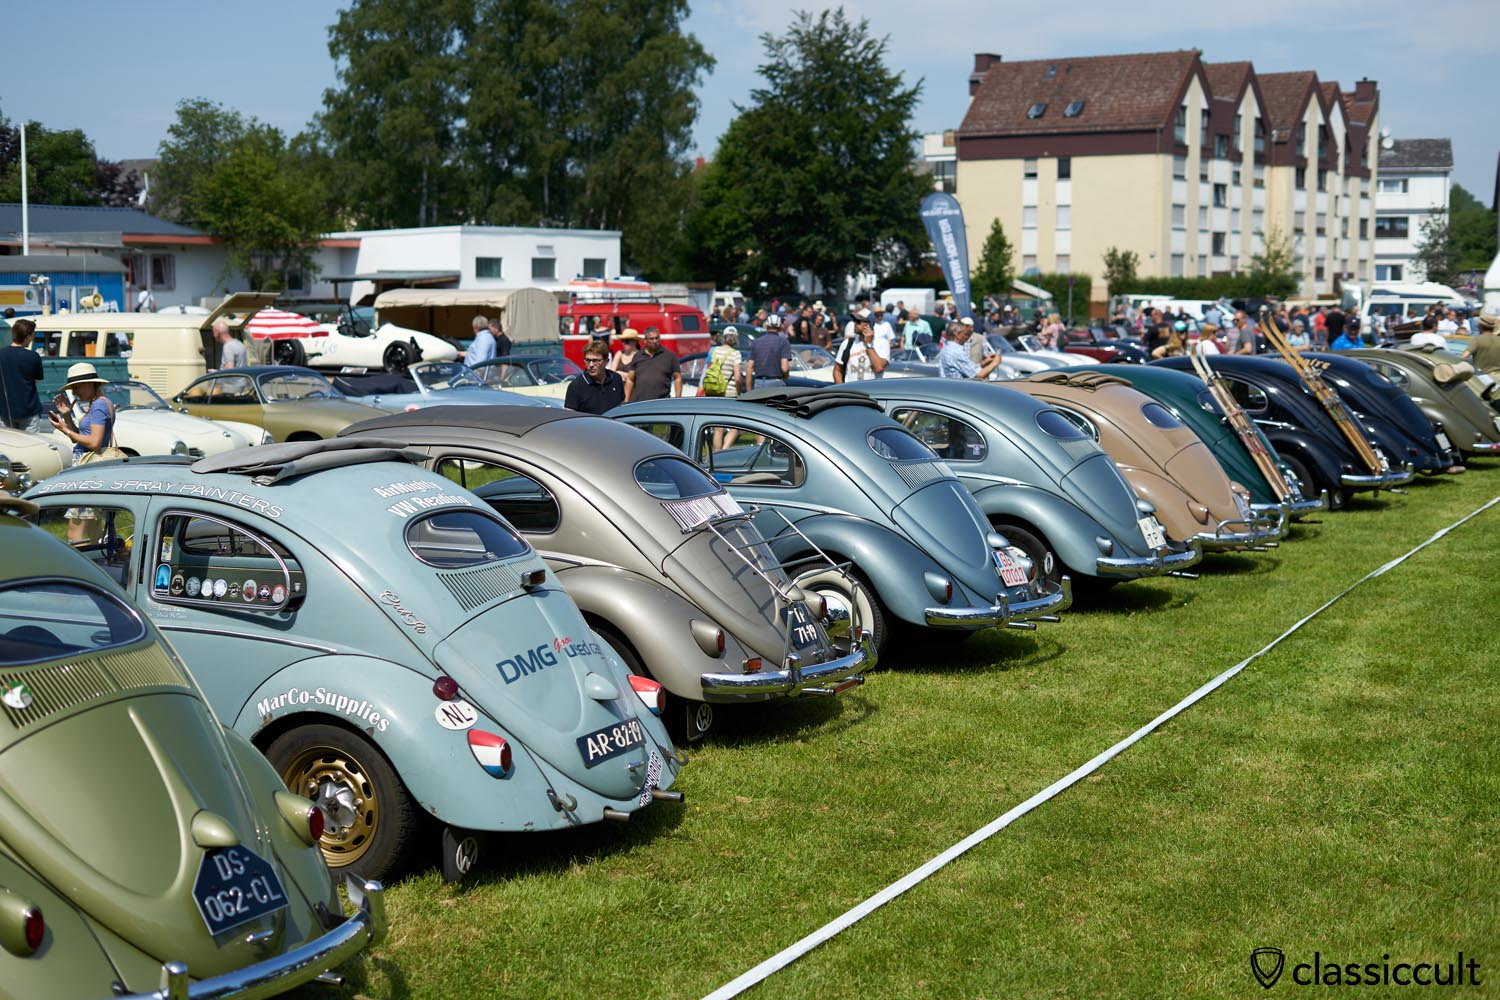 VW Ovals, 2019 Bad Camberg Meeting